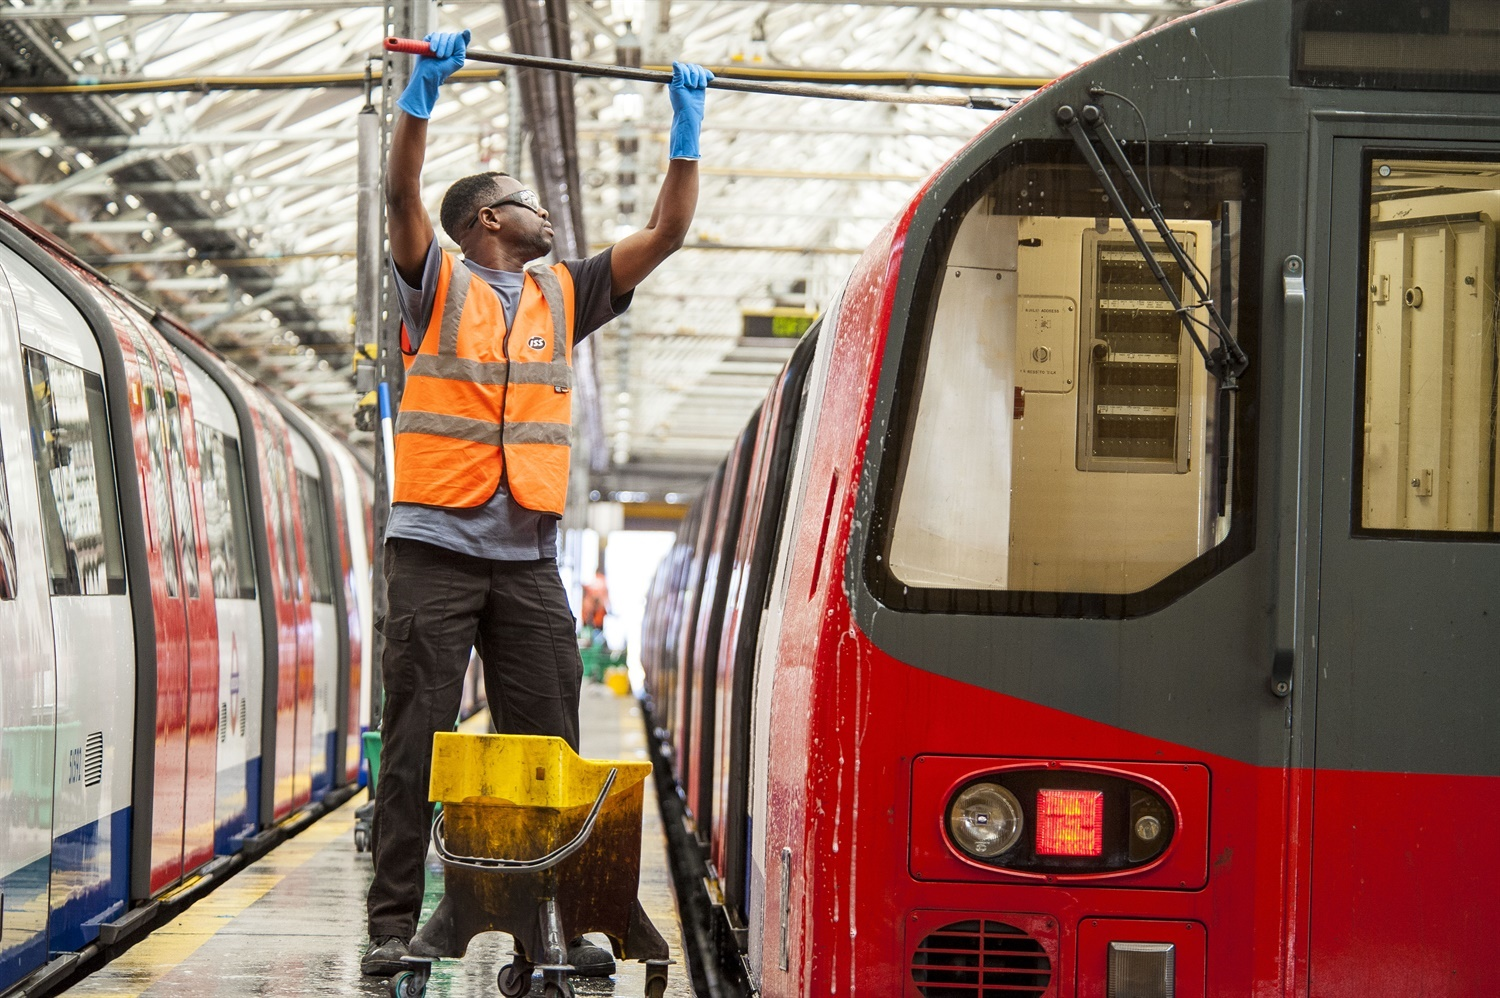 TfL to decide on extension of Alstom's Northern Line contract